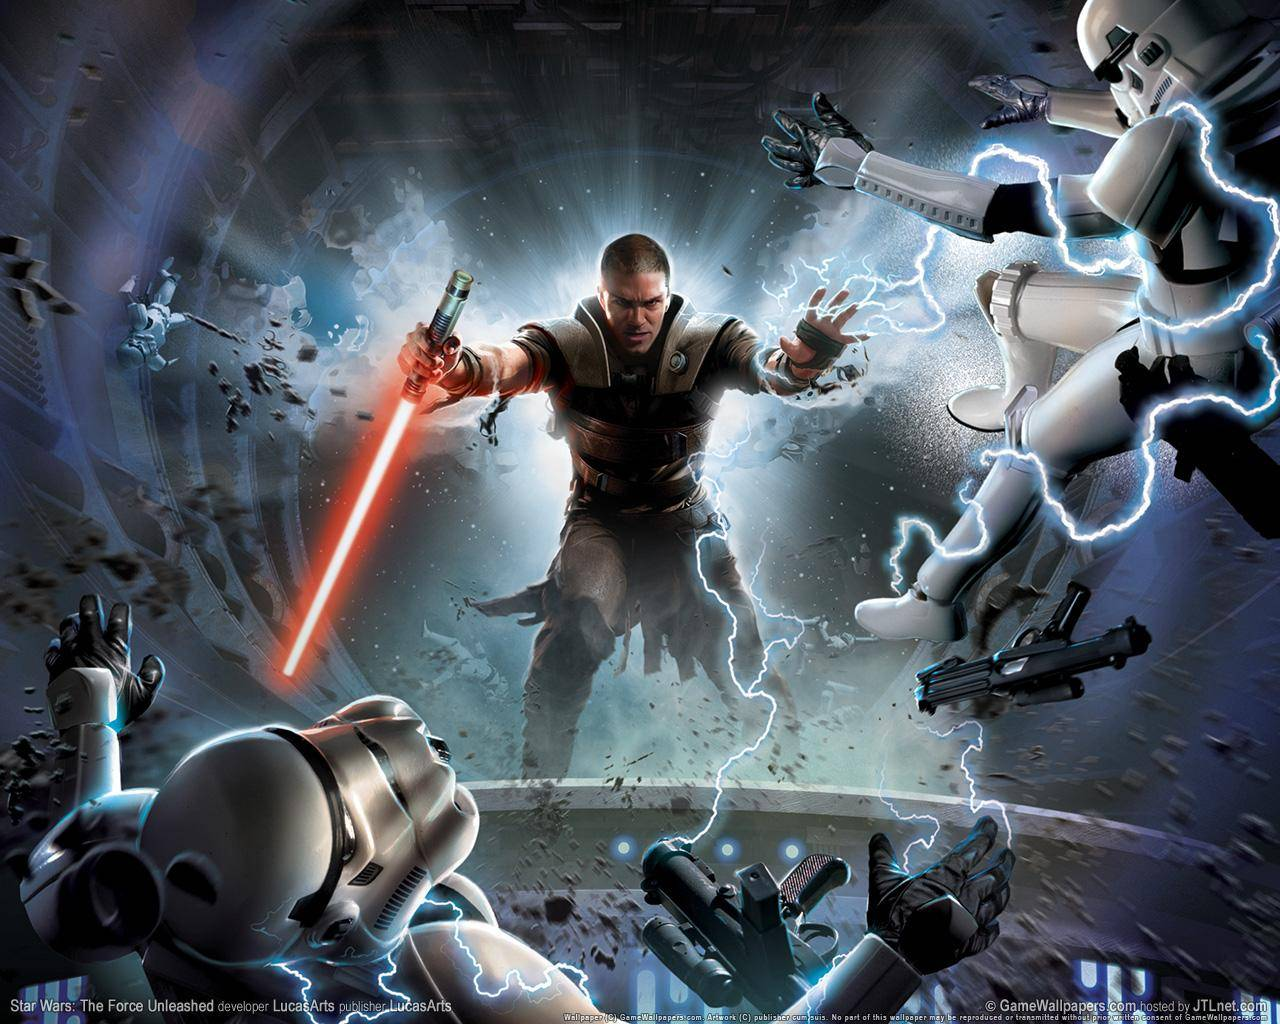 http://3.bp.blogspot.com/-PKsyv55s3Ac/TrPfcIxZoDI/AAAAAAAAAHE/EjS0GUxo5F8/s1600/star-wars-the-force-unleashed-starkiller-push-artwork-big.jpg